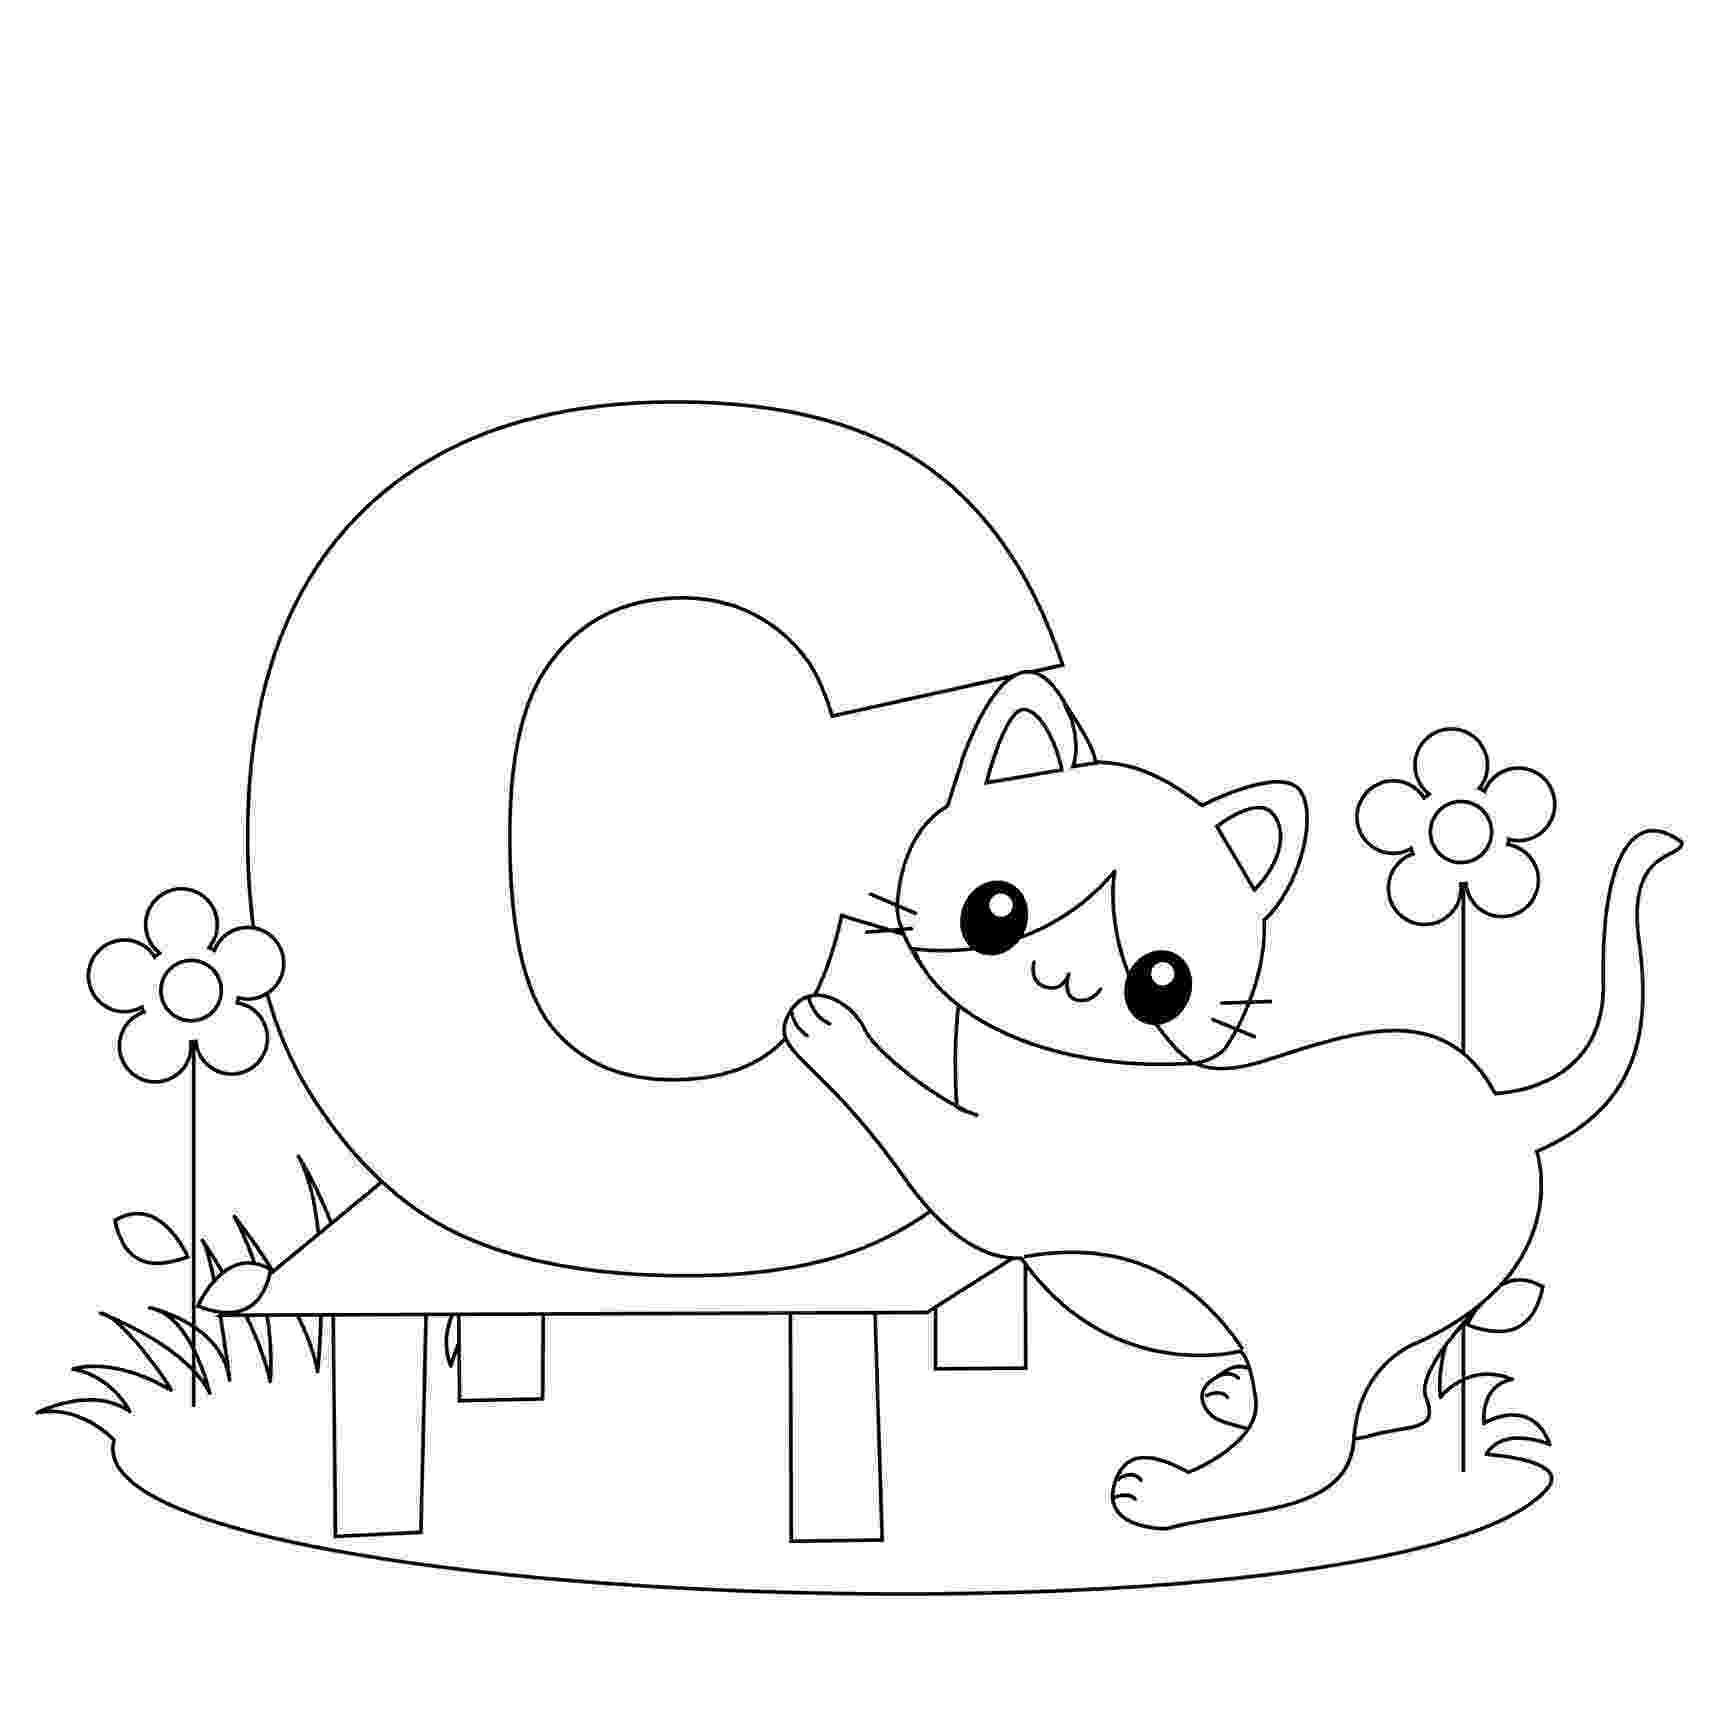 letter c coloring page free printable alphabet coloring pages for kids best coloring c letter page